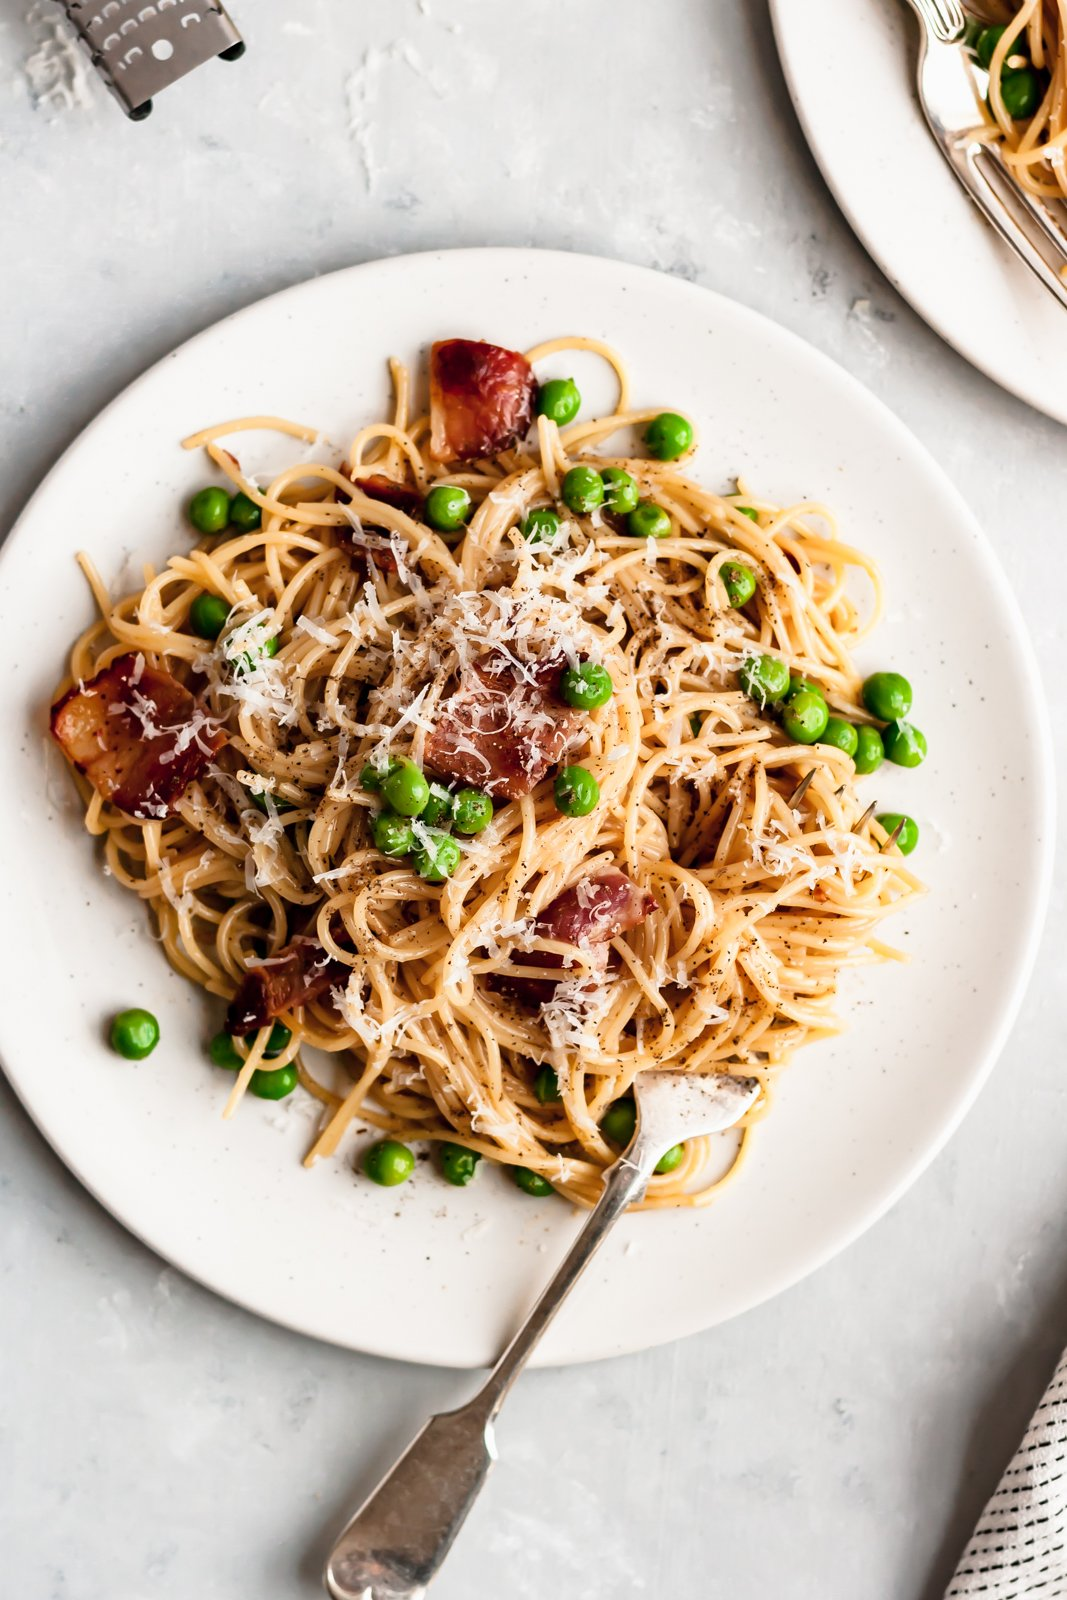 healthy pasta carbonara with peas on a plate with a fork